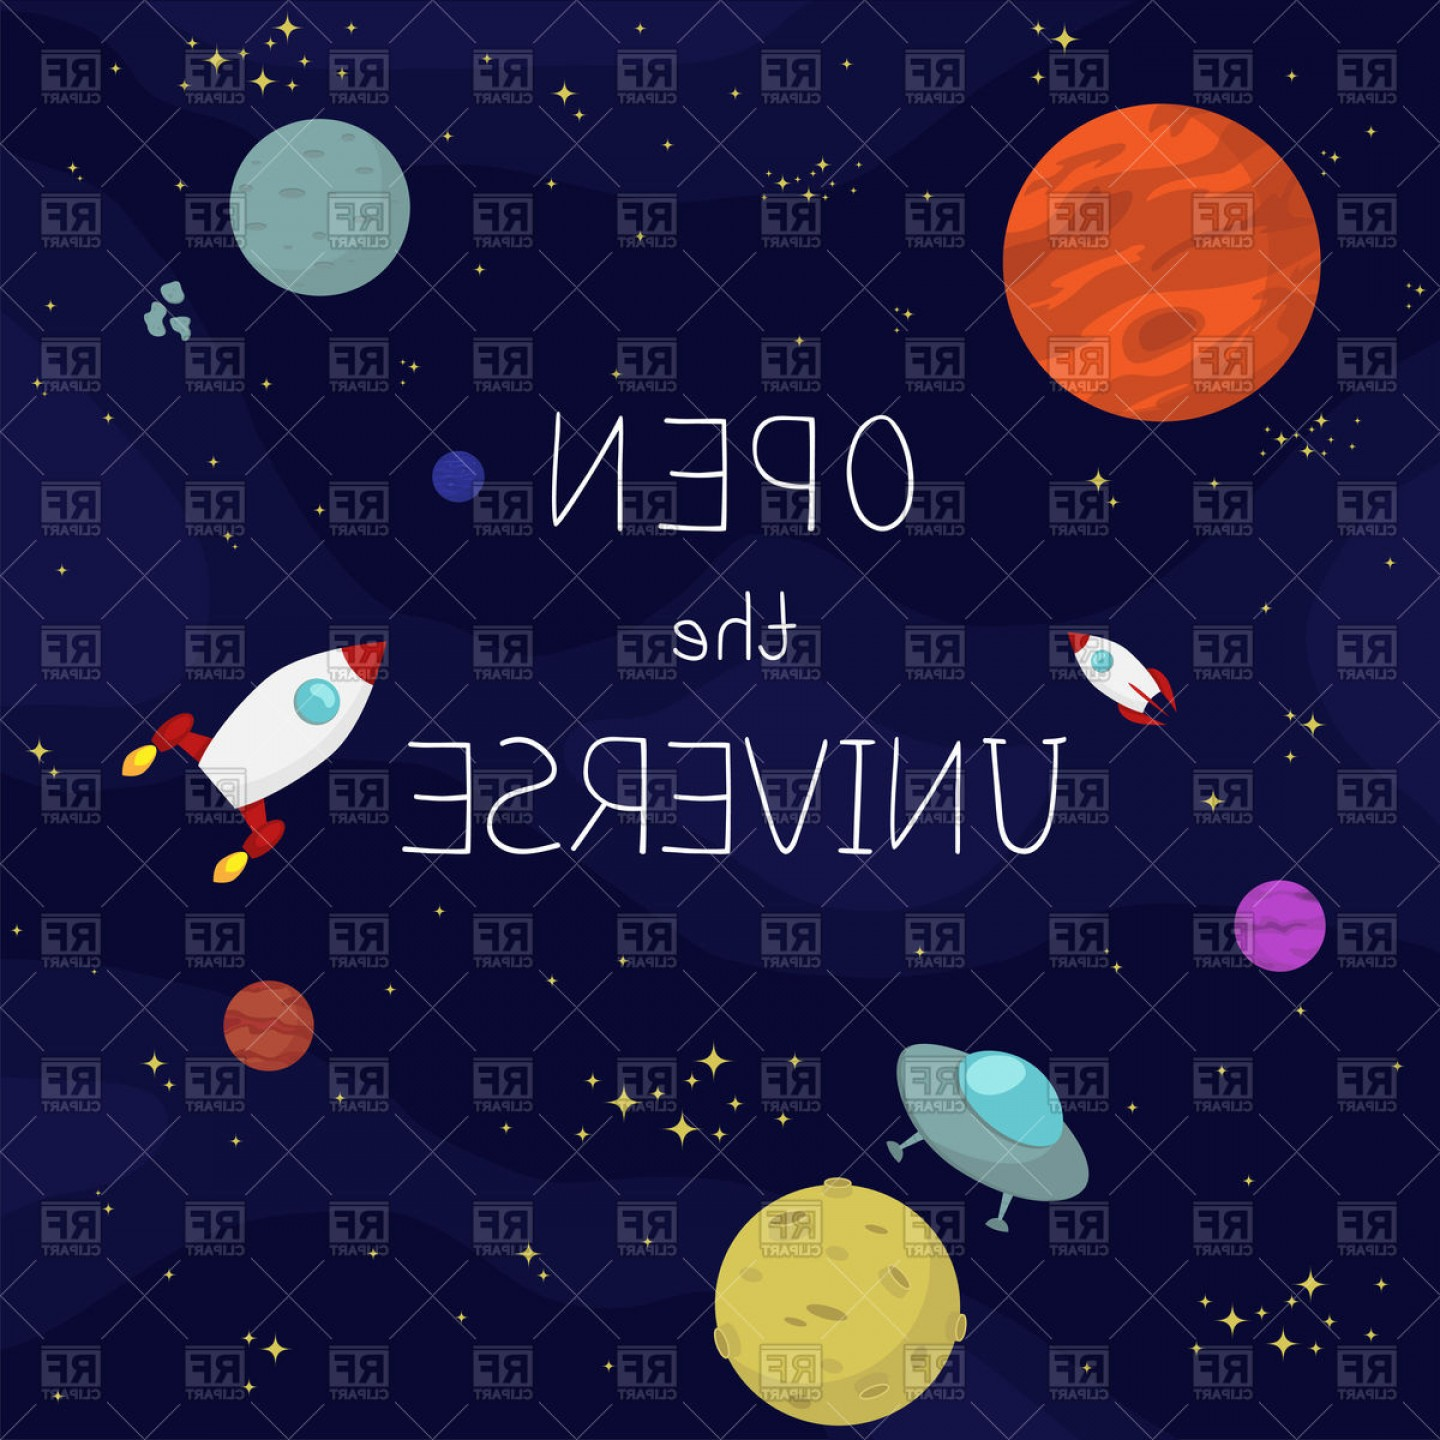 Planets Vector Graphics: Space Background With Planets Stars And Spaceships Cosmos Or Universe Vector Clipart